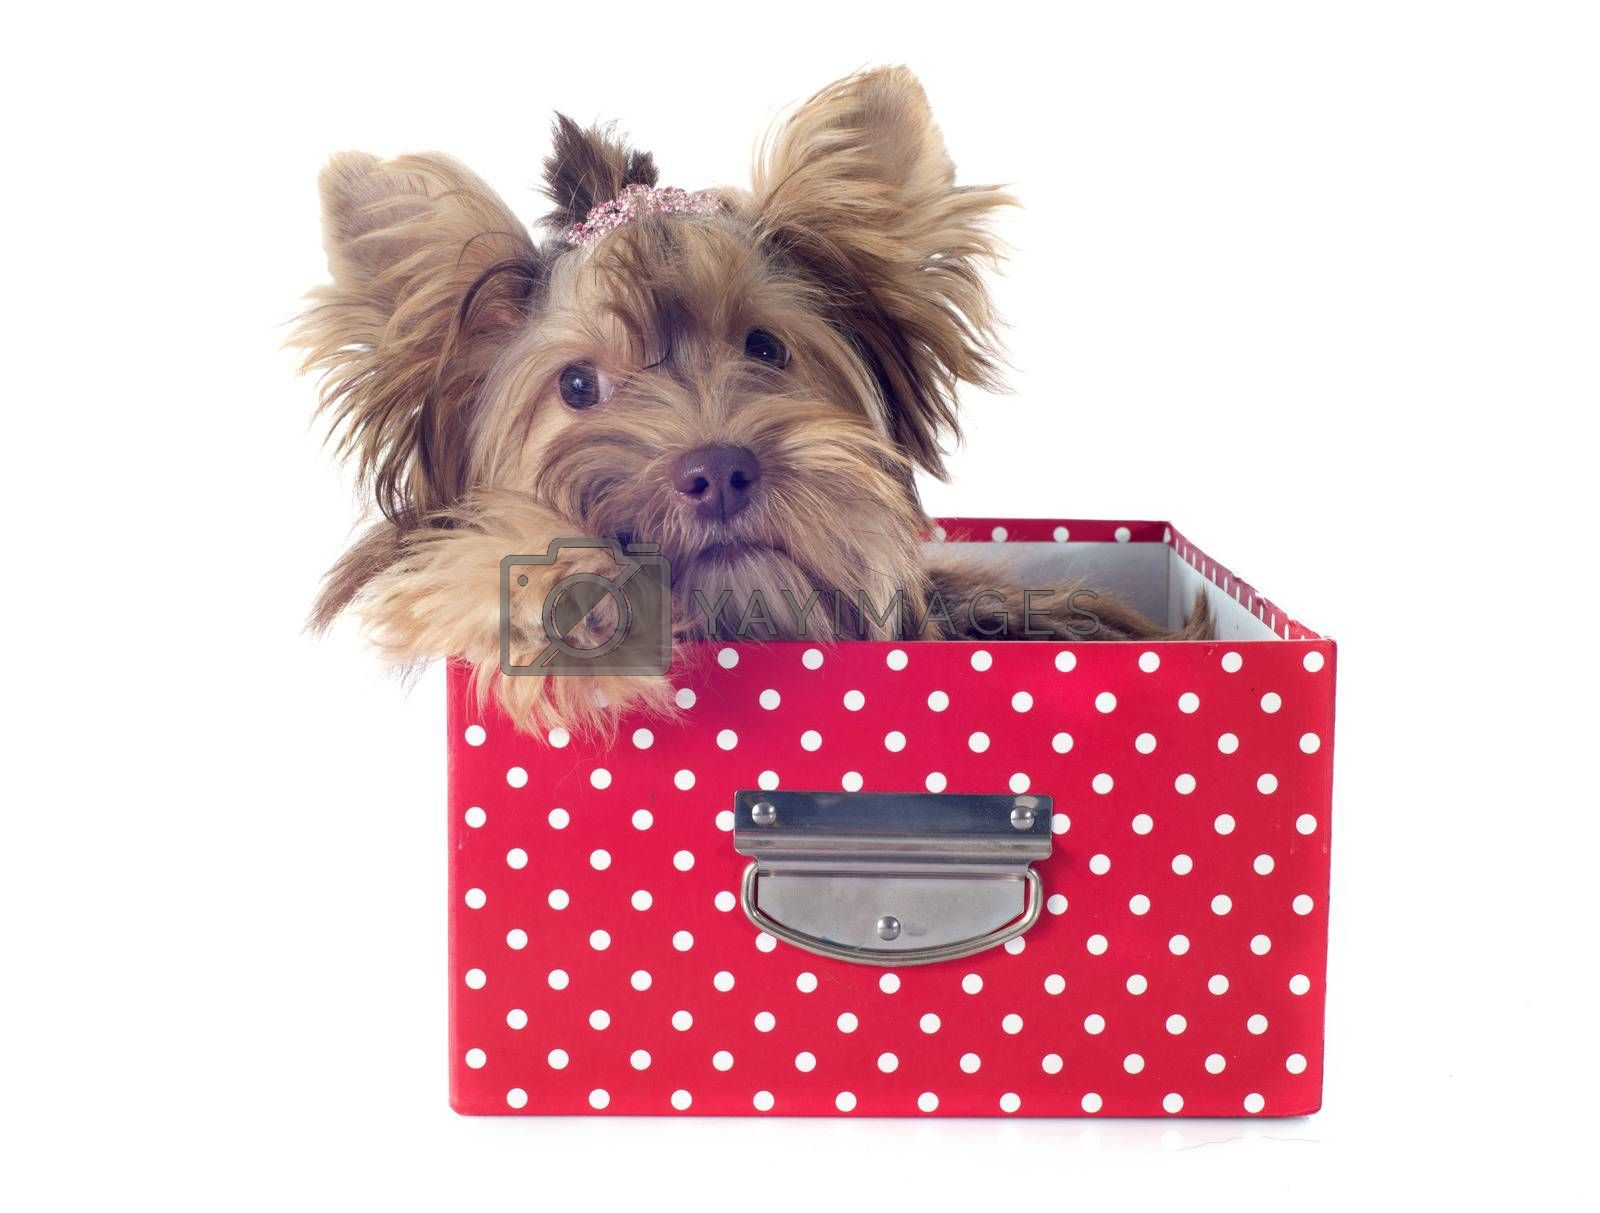 Royalty free image of chocolate yorkshire terrier by cynoclub